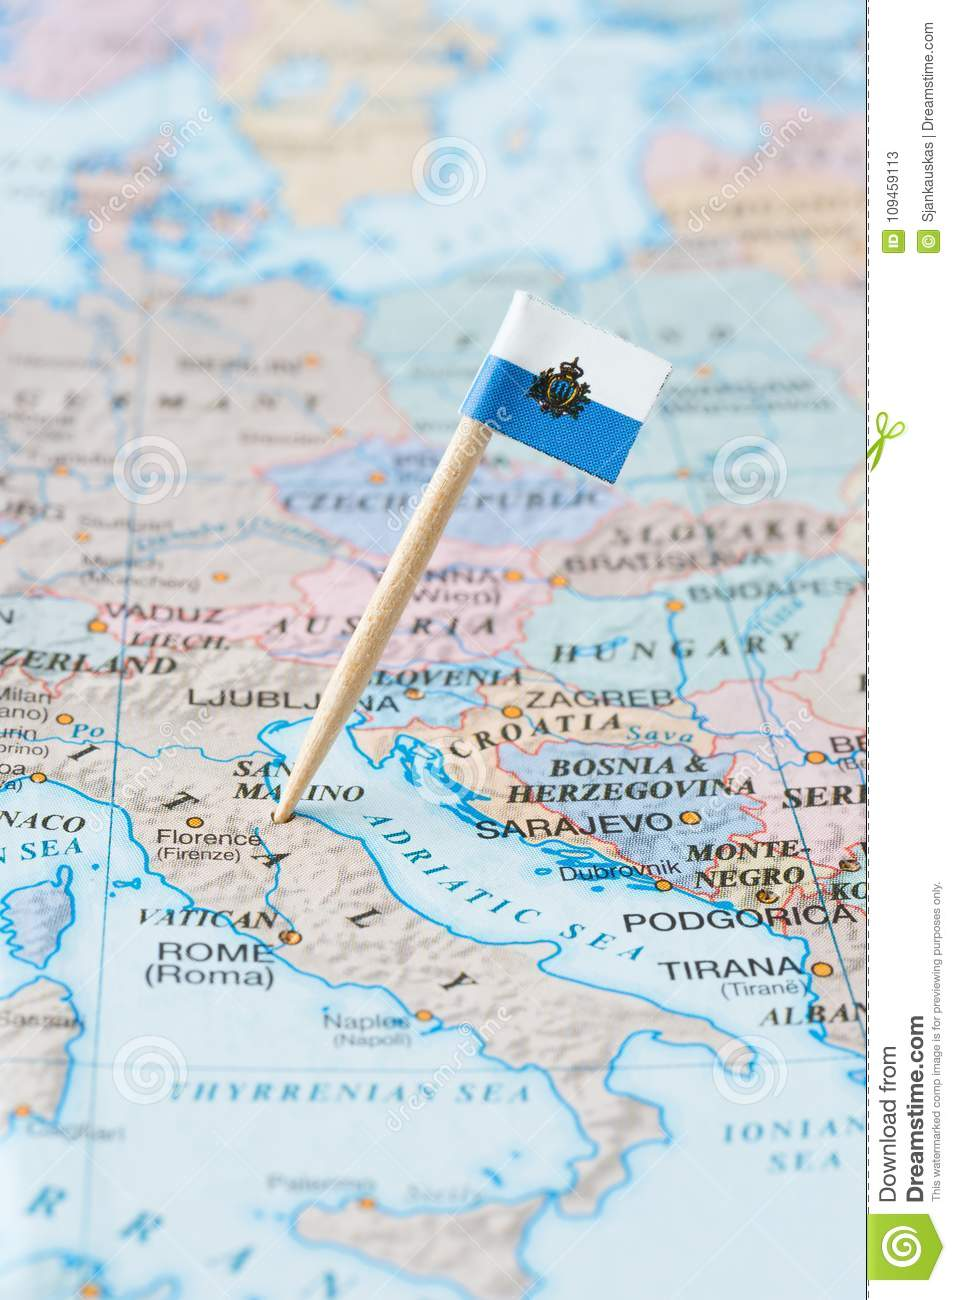 San Marino Map And Flag Pin Stock Image - Image of adriatic ... on tuvalu on world map, palau on world map, japan on world map, uzbekistan on world map, malta on world map, estonia on world map, andorra on world map, slovenia on world map, djibouti on world map, luxembourg on world map, serbia on world map, liechtenstein on world map, monaco on world map, brunei on world map, liberia on world map, singapore on world map, vatican city on world map, montenegro on world map, kosovo on world map, liechtenstien on world map,